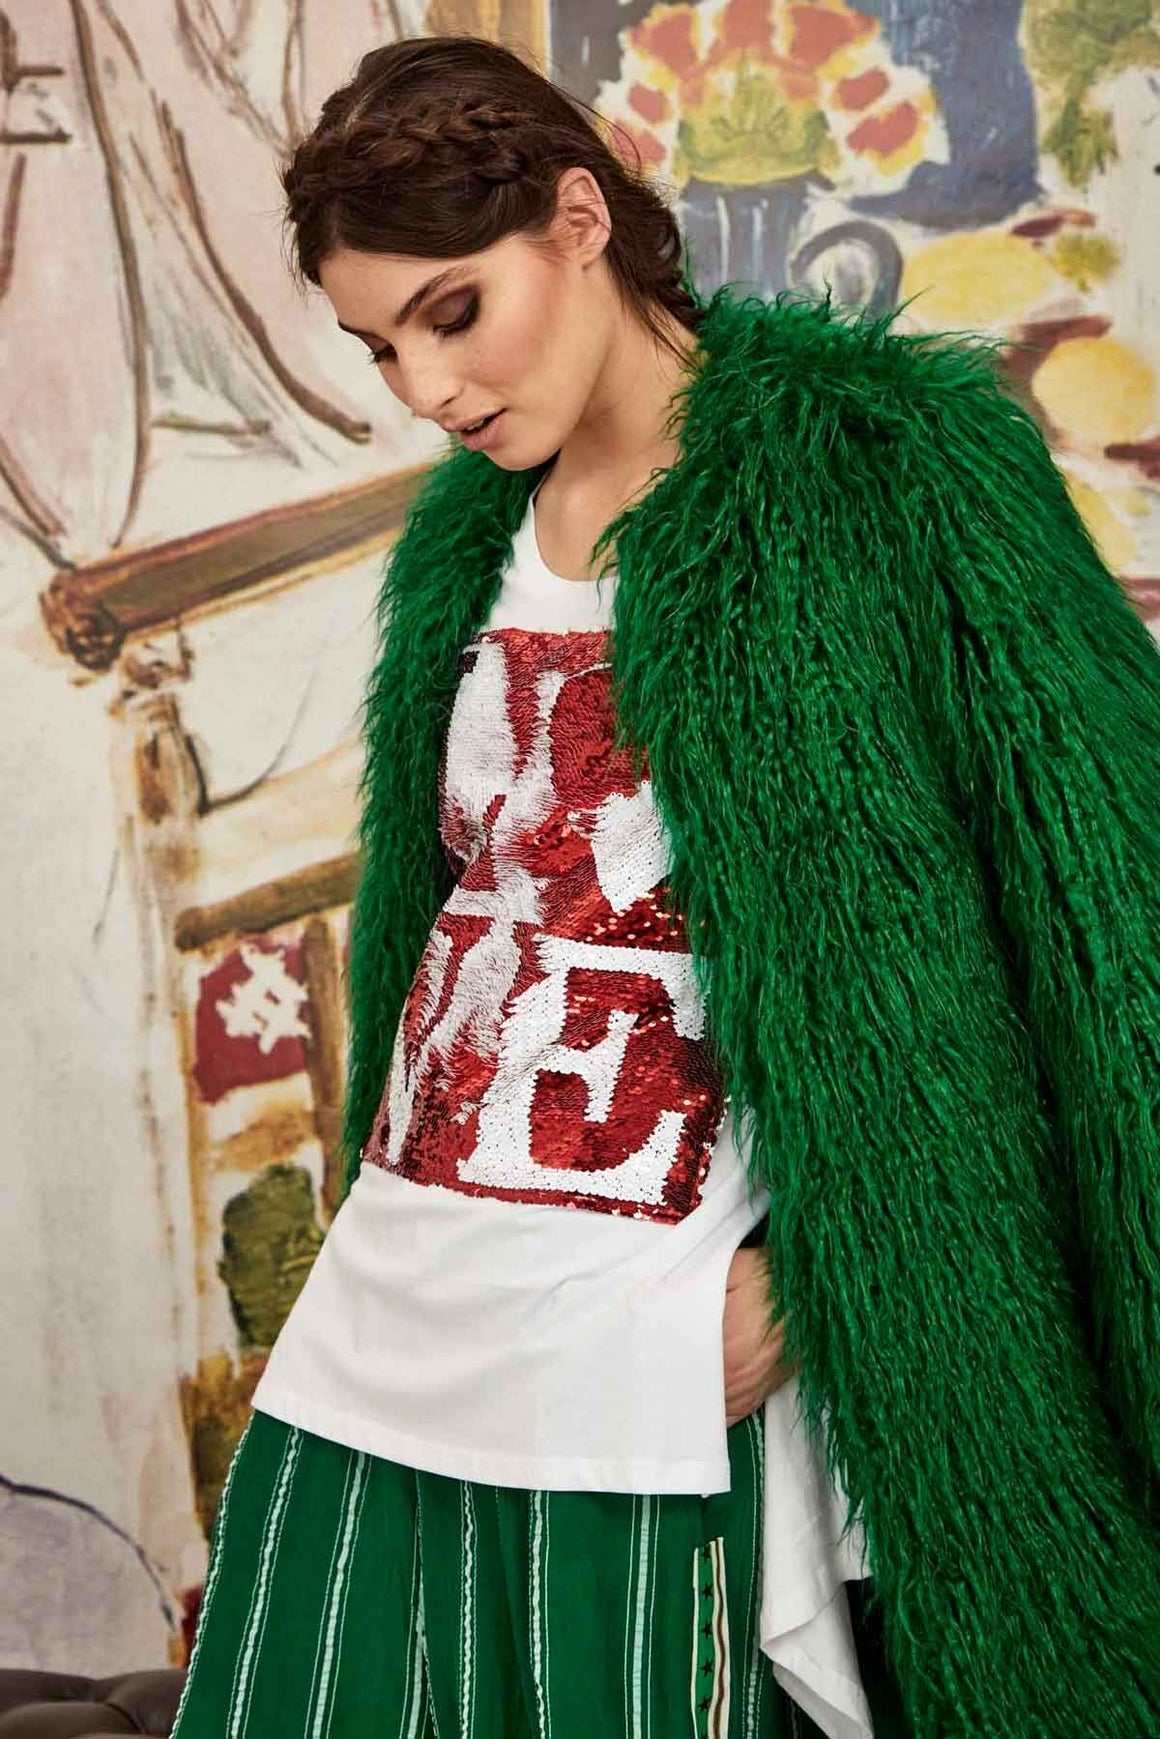 To Fur With Love Coat - Green | Shop Curate online at Wallace & Gibbs